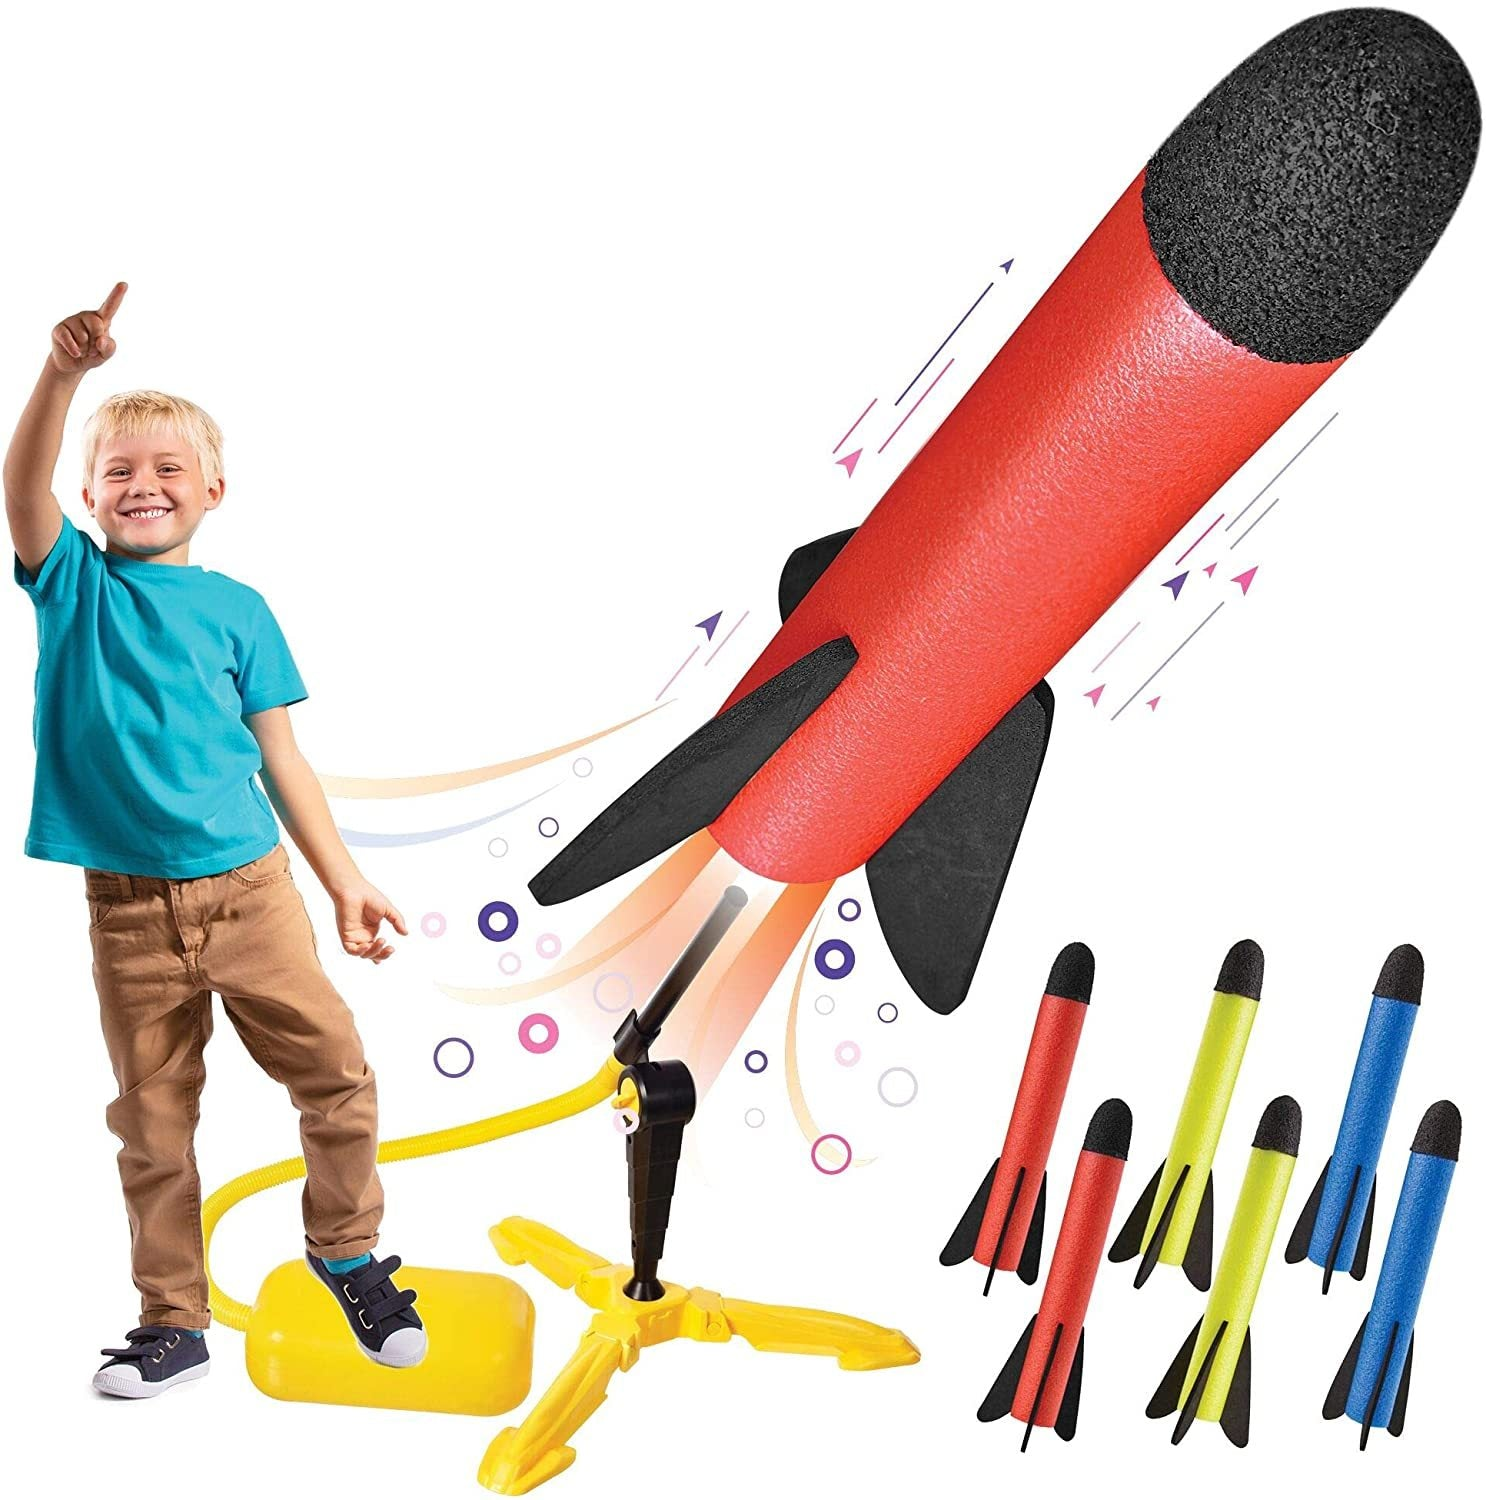 Toy Rocket Launcher-Buy 2 Free Shipping